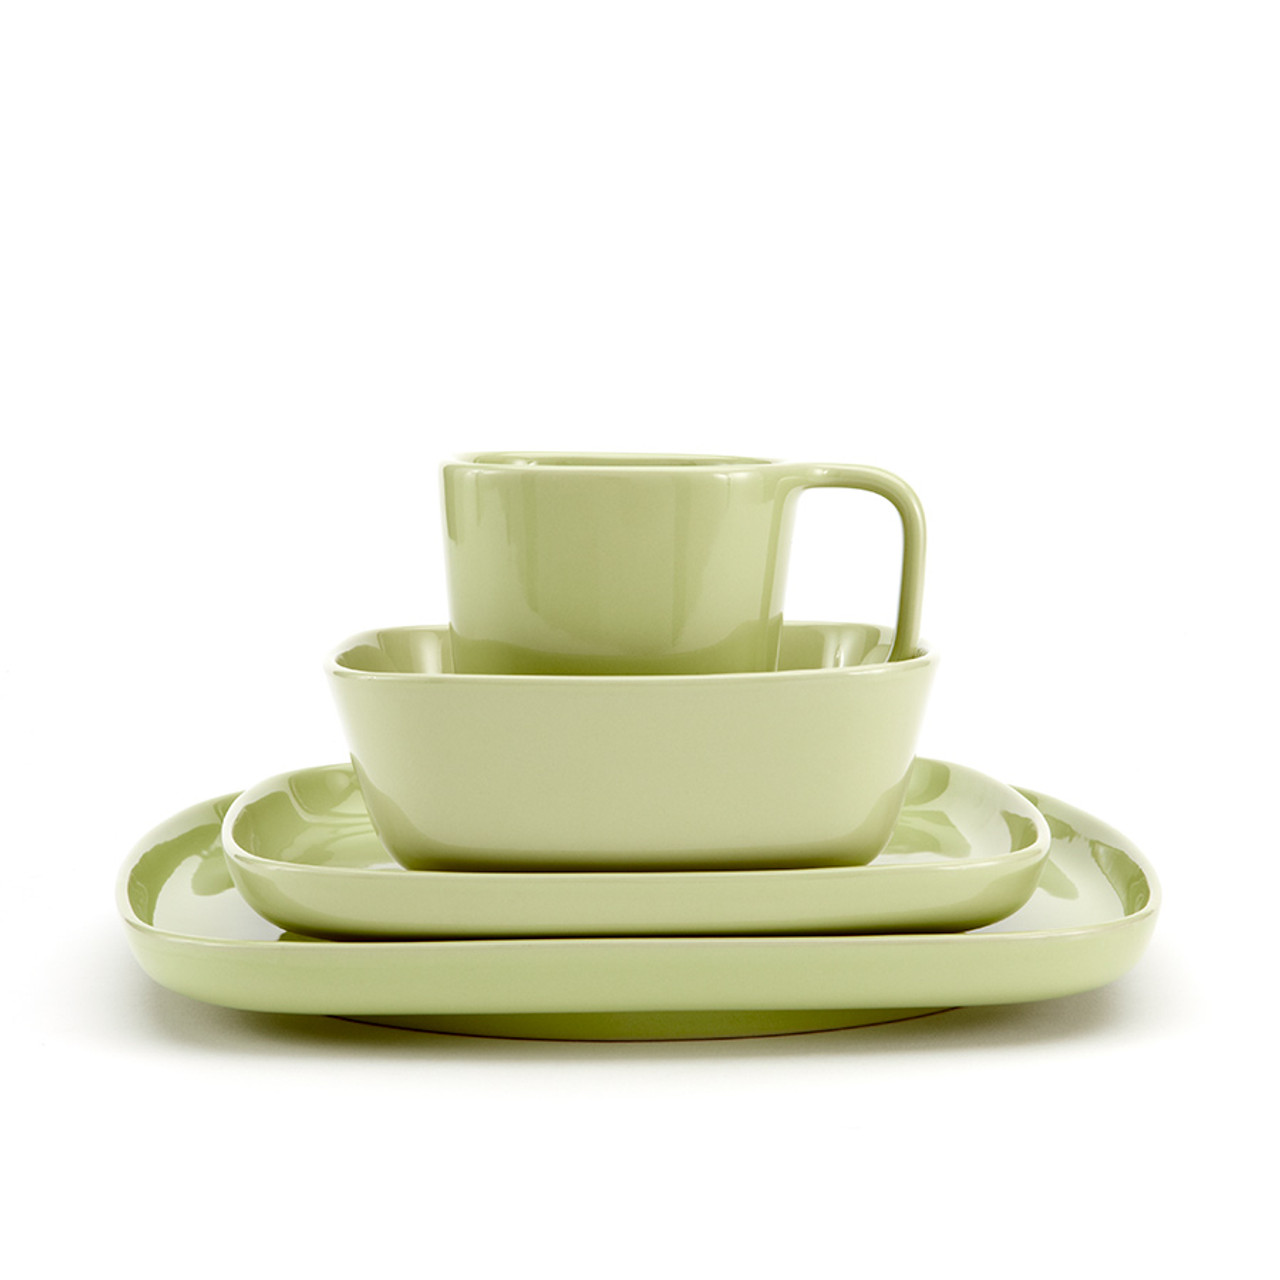 Karo - Light Green Dinnerware set 16pc